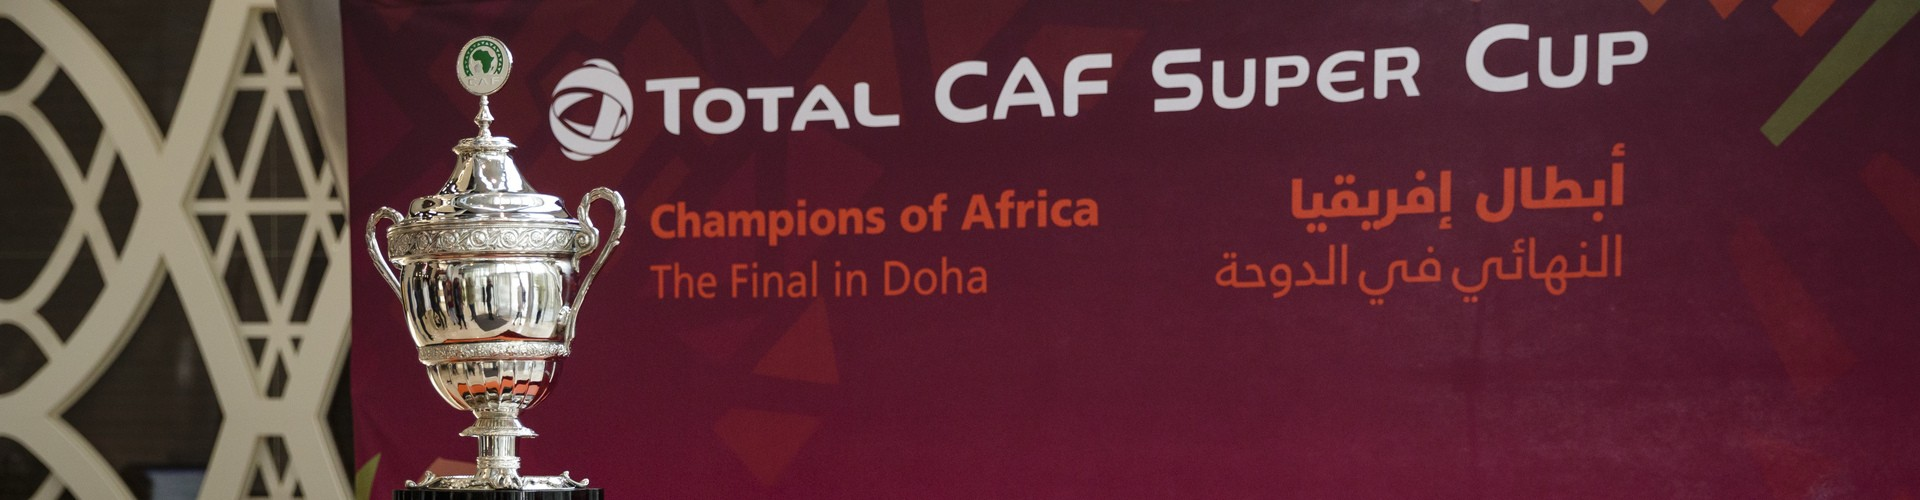 The TOTAL CAF Super Cup trophy